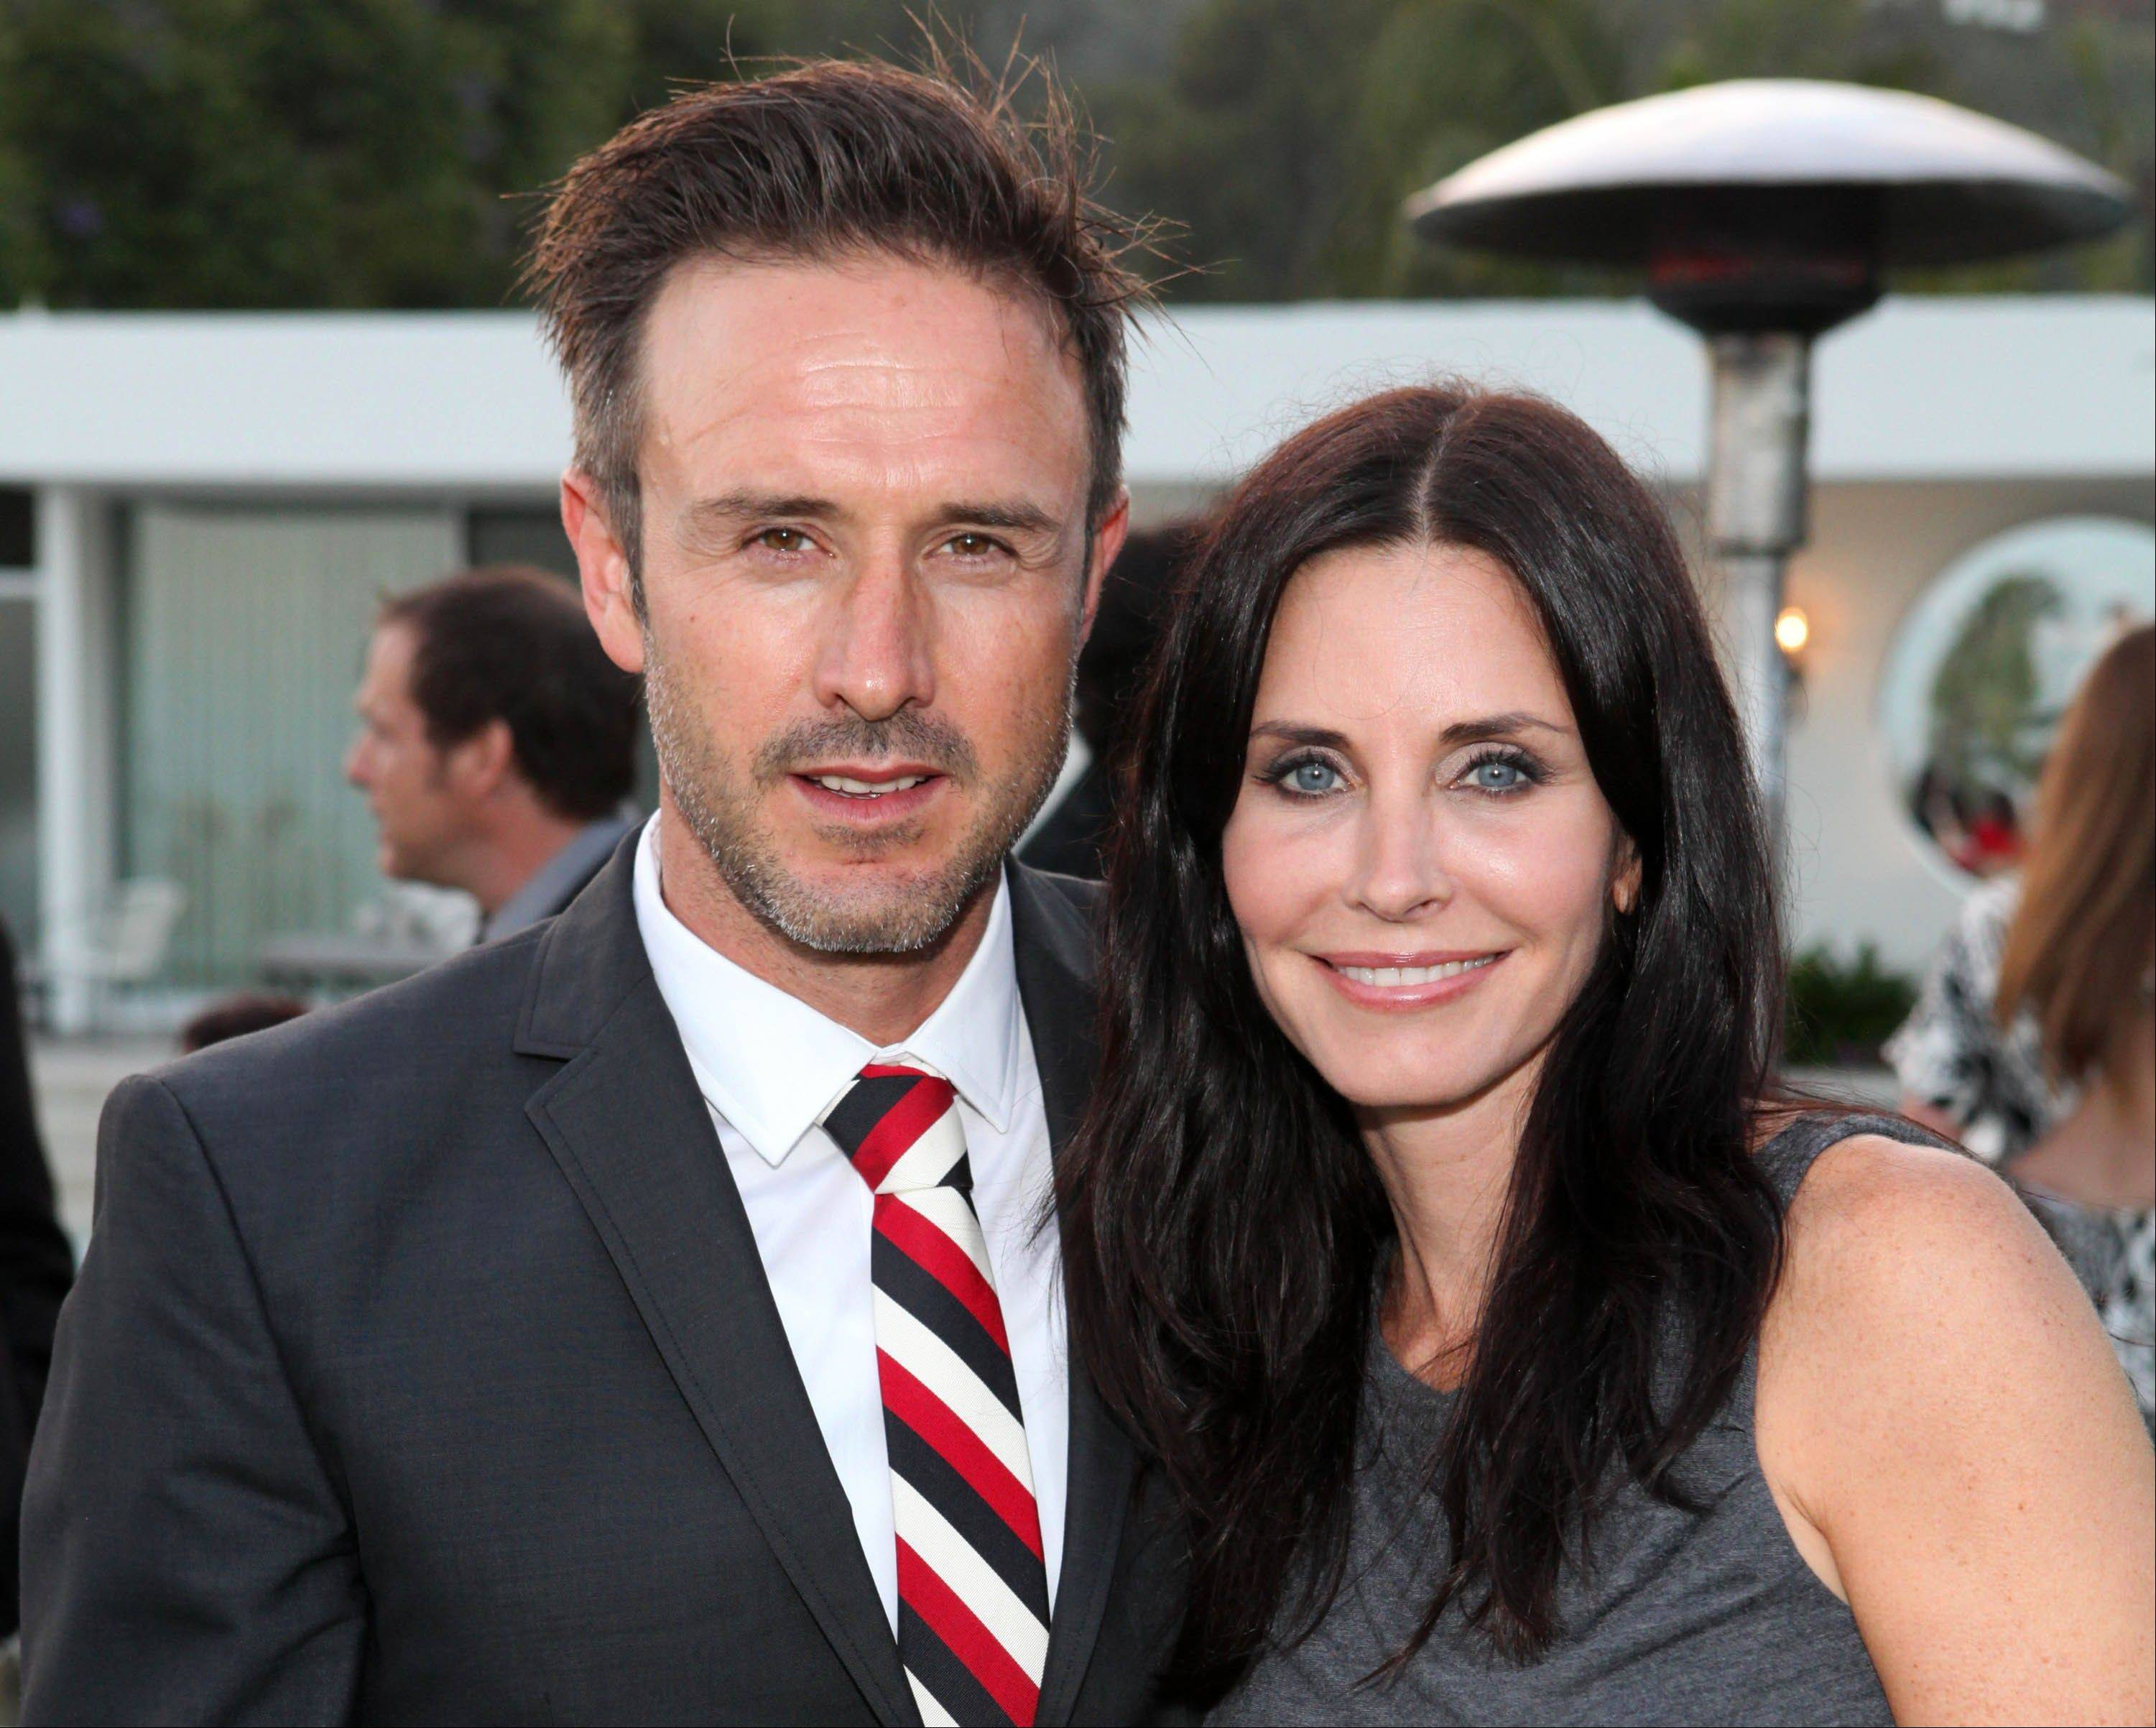 A Los Angeles judge finalized Courteney Cox and David Arquette�s divorce on Tuesday. The pair were married in 1999 and announced they were separating in 2010.